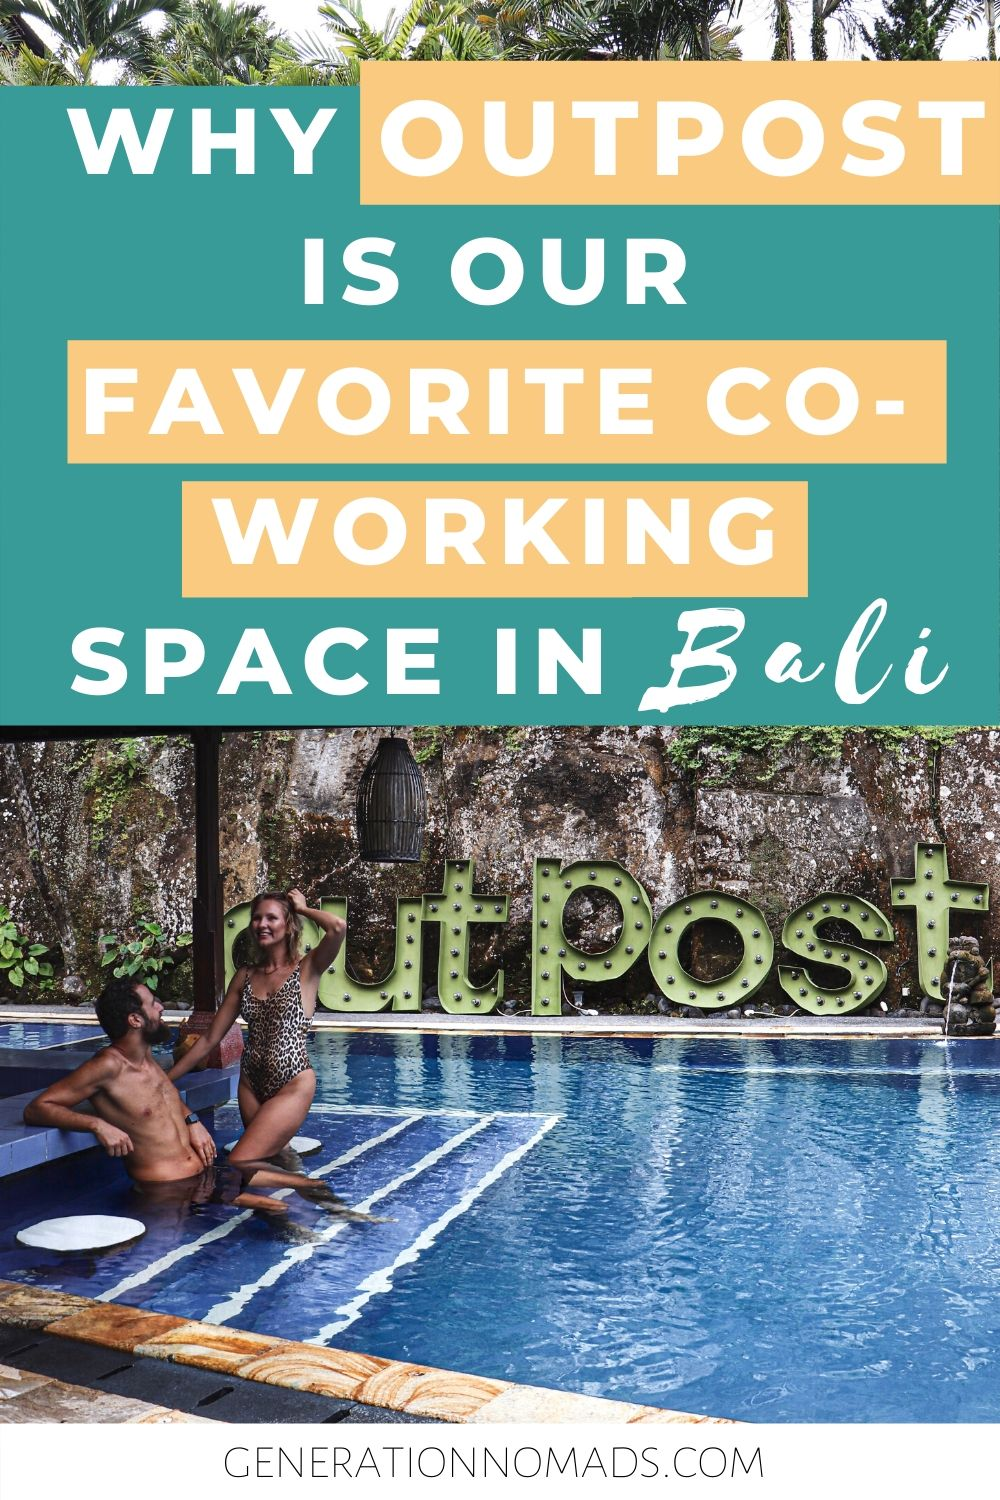 Are you looking for the best coworking space in Bali? Look no further! We visited all coworking offices in Canggu & Ubud and have found our favorite on: Outpost. Read here why we think Outpost is the best remote workspace for digital nomads, remote workers, freelancers, and online entrepreneurs in the best destination for digital nomads - Bali. Our detailed review of the work space, pool, facilities. If it's the right space for you, we have a discount code for you.